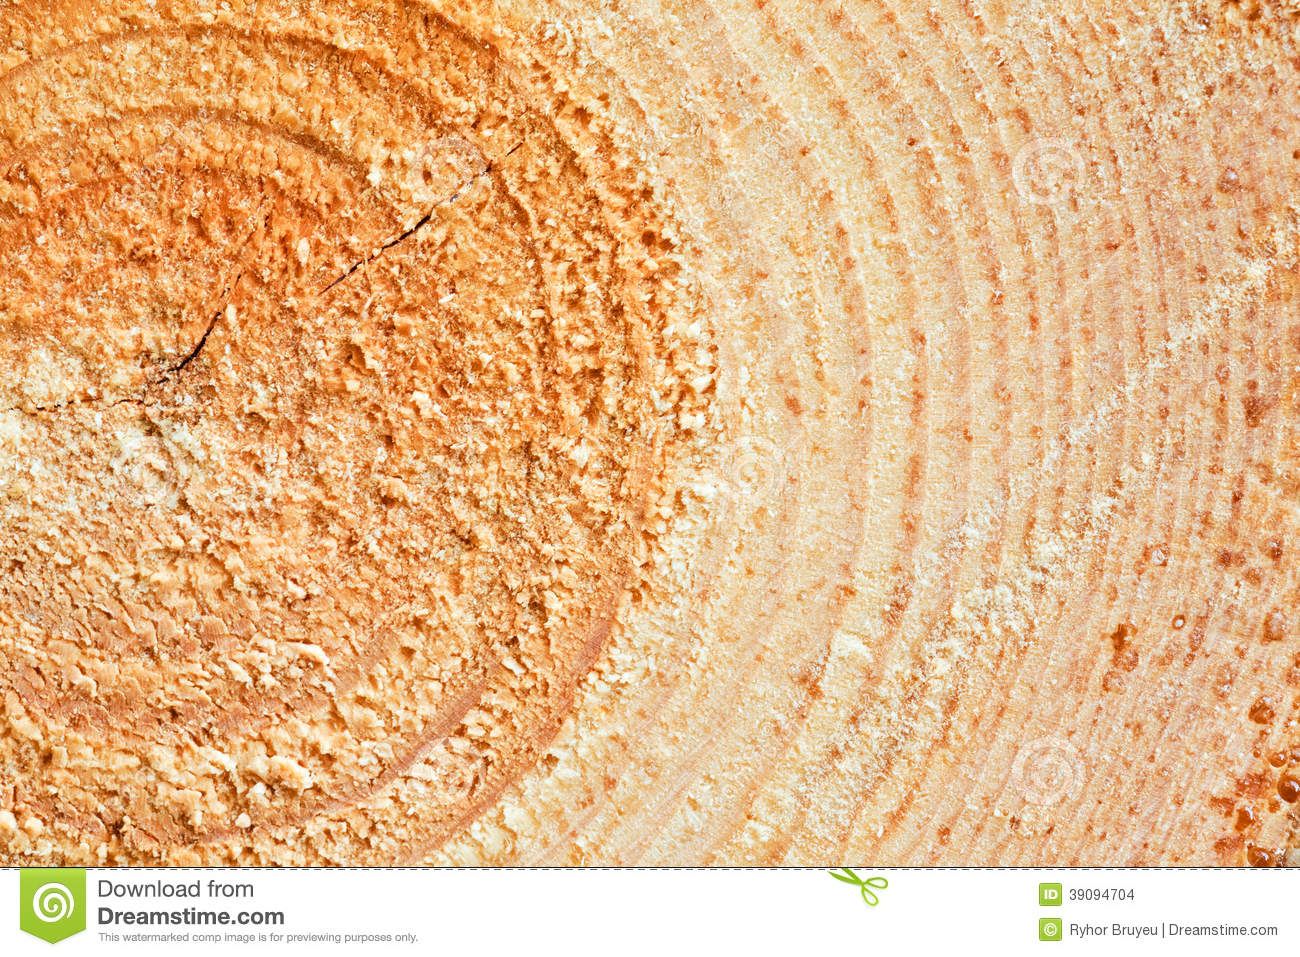 Annual rings on sawn pine tree wood stock photo image Pine tree timber